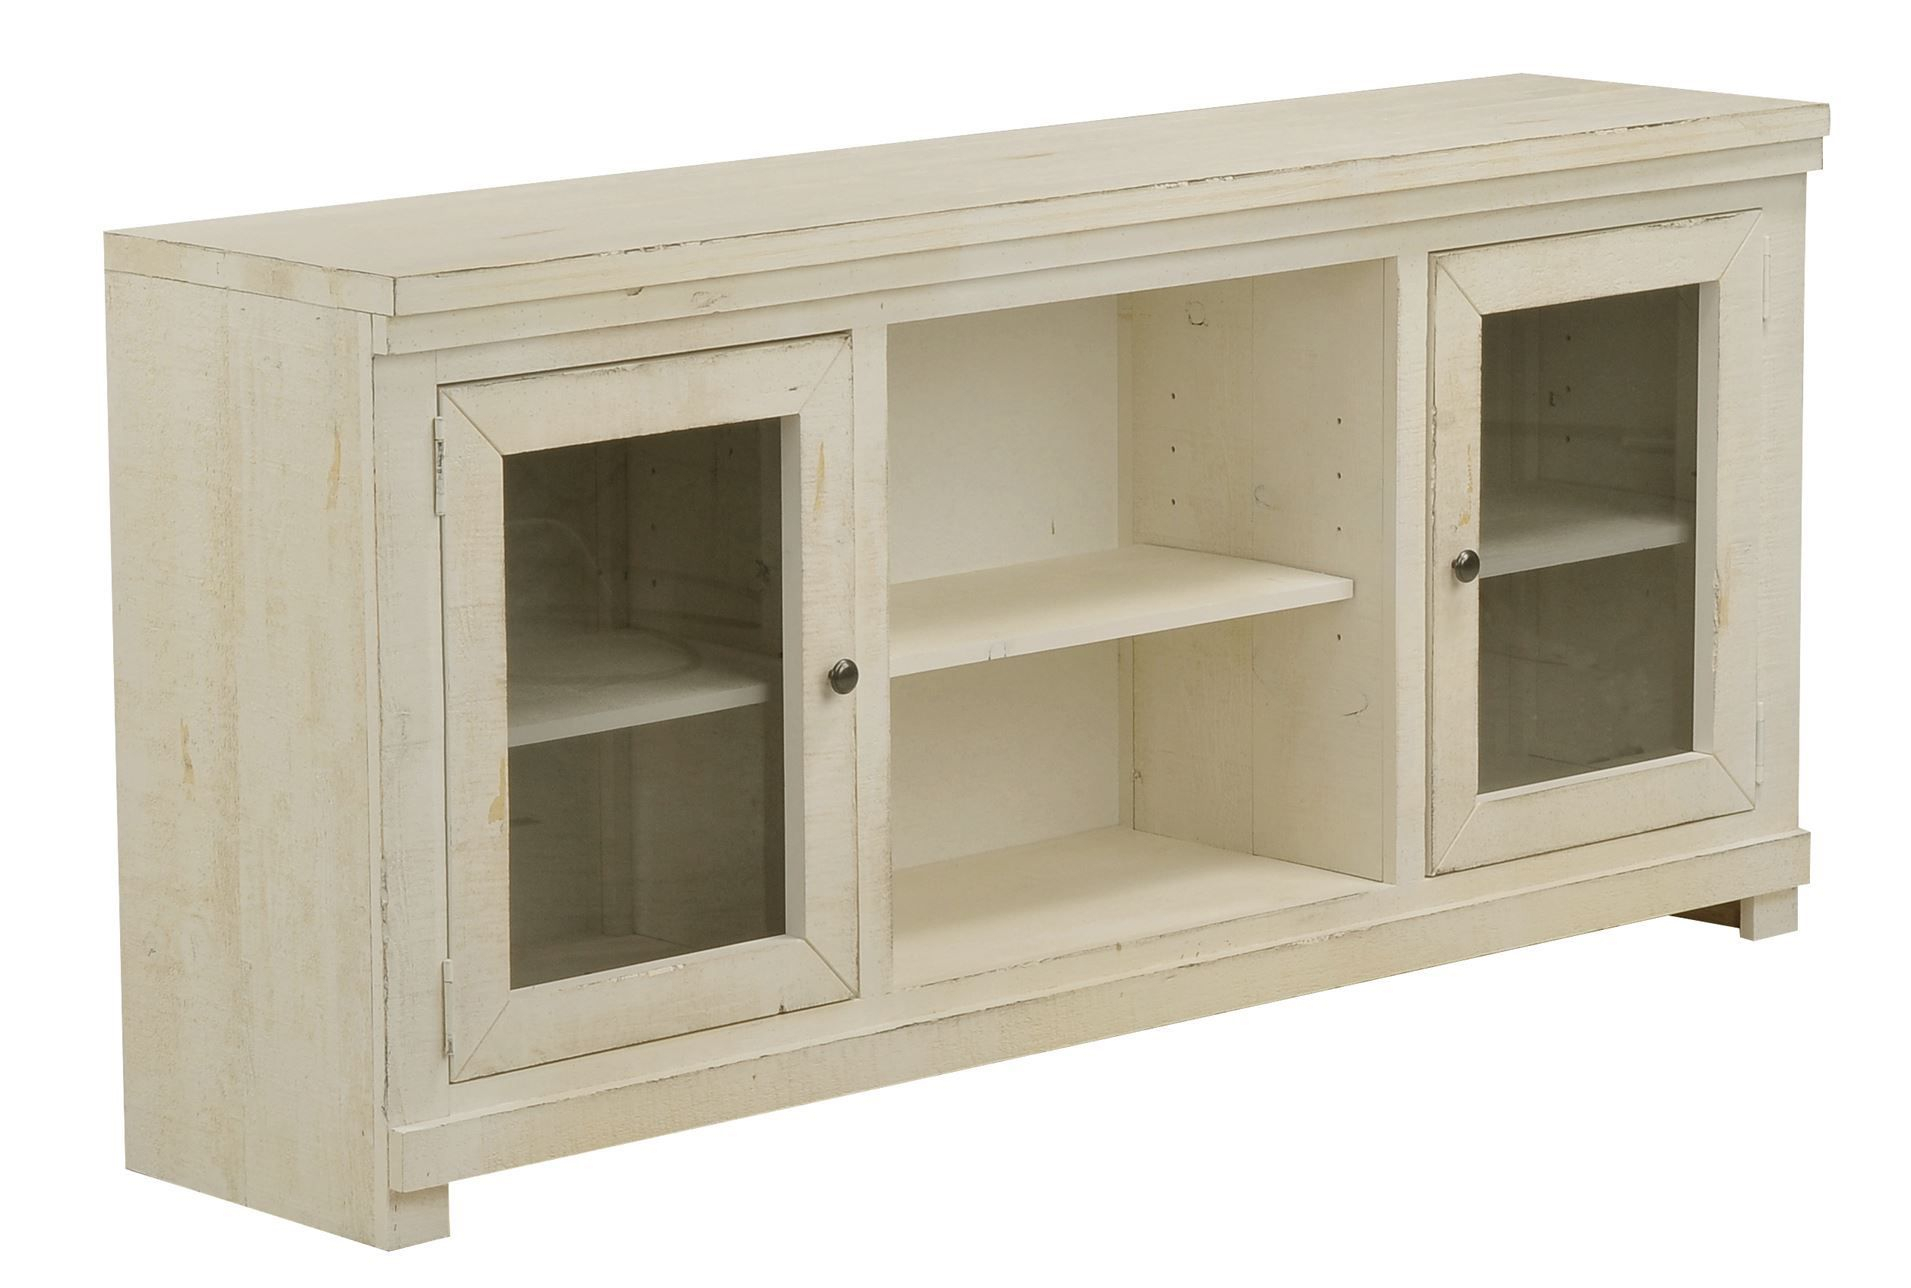 Sinclair White 68 Inch Tv Stand | For The Home | Living Room Designs Intended For Sinclair White 64 Inch Tv Stands (View 5 of 30)